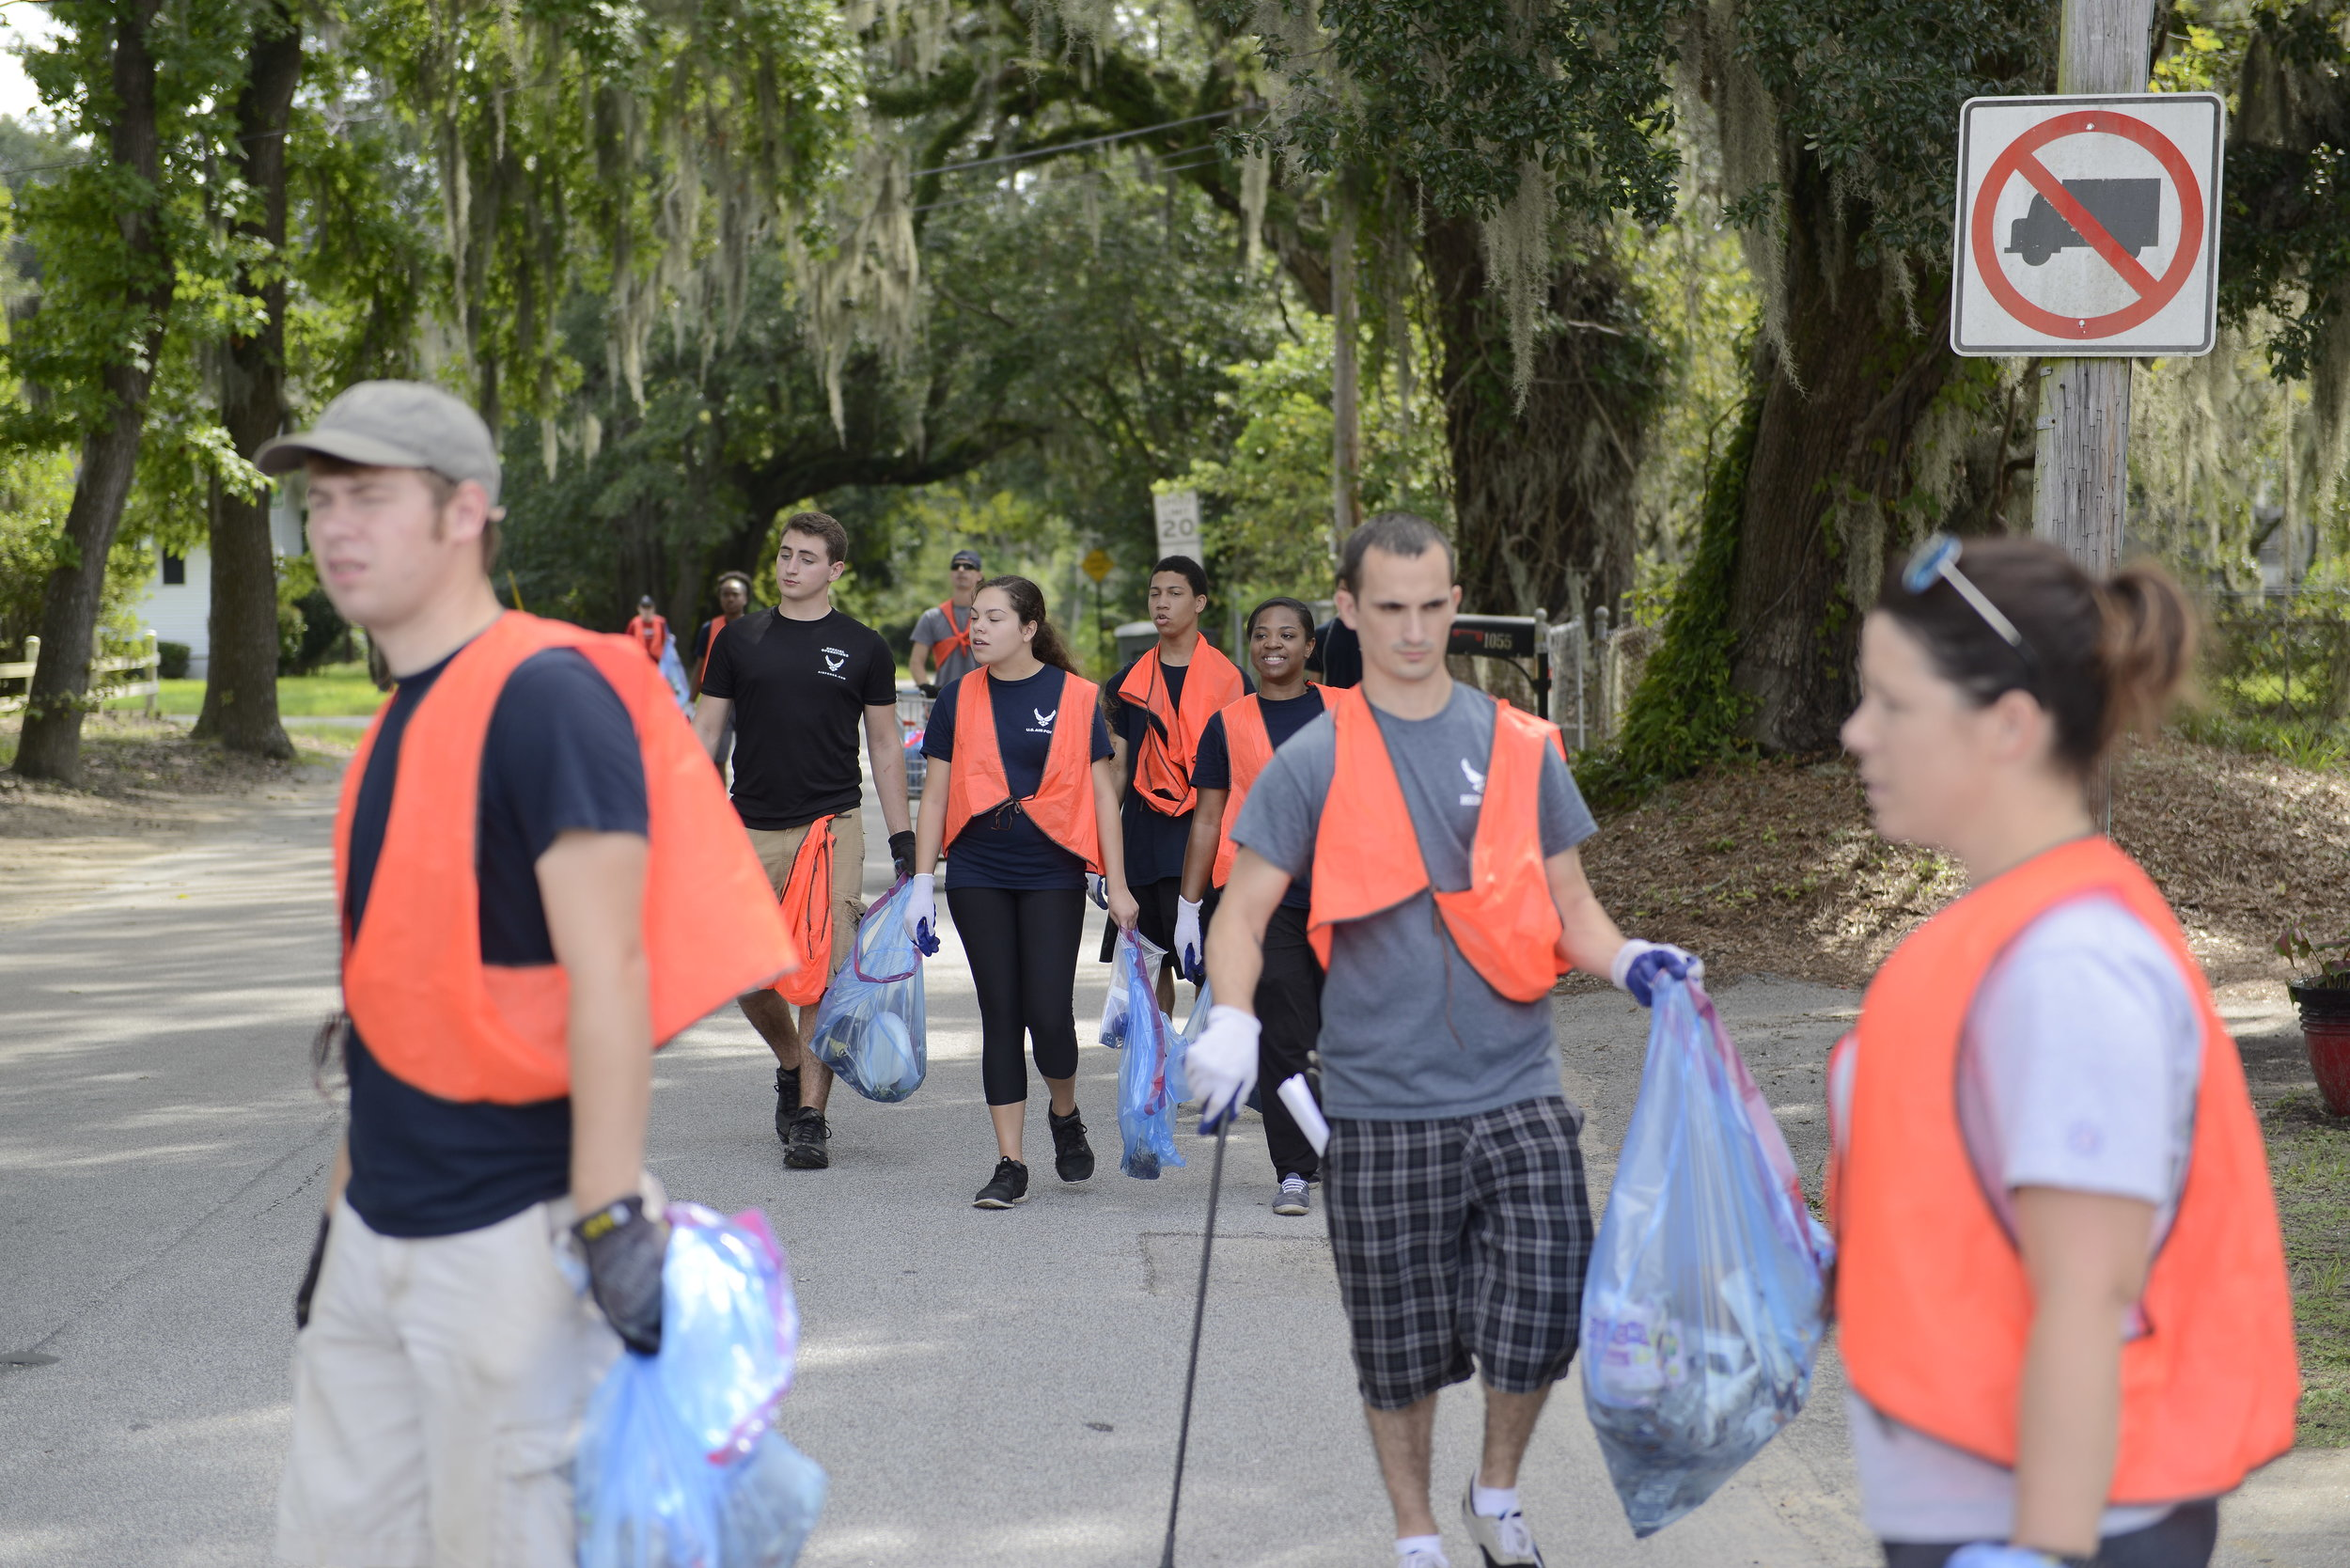 Next Community Clean up day March 23,2019 - We are asking groups and individuals to volunteer Saturday, March 23 between the hours of 7:30am- 3:00pm. Details below.